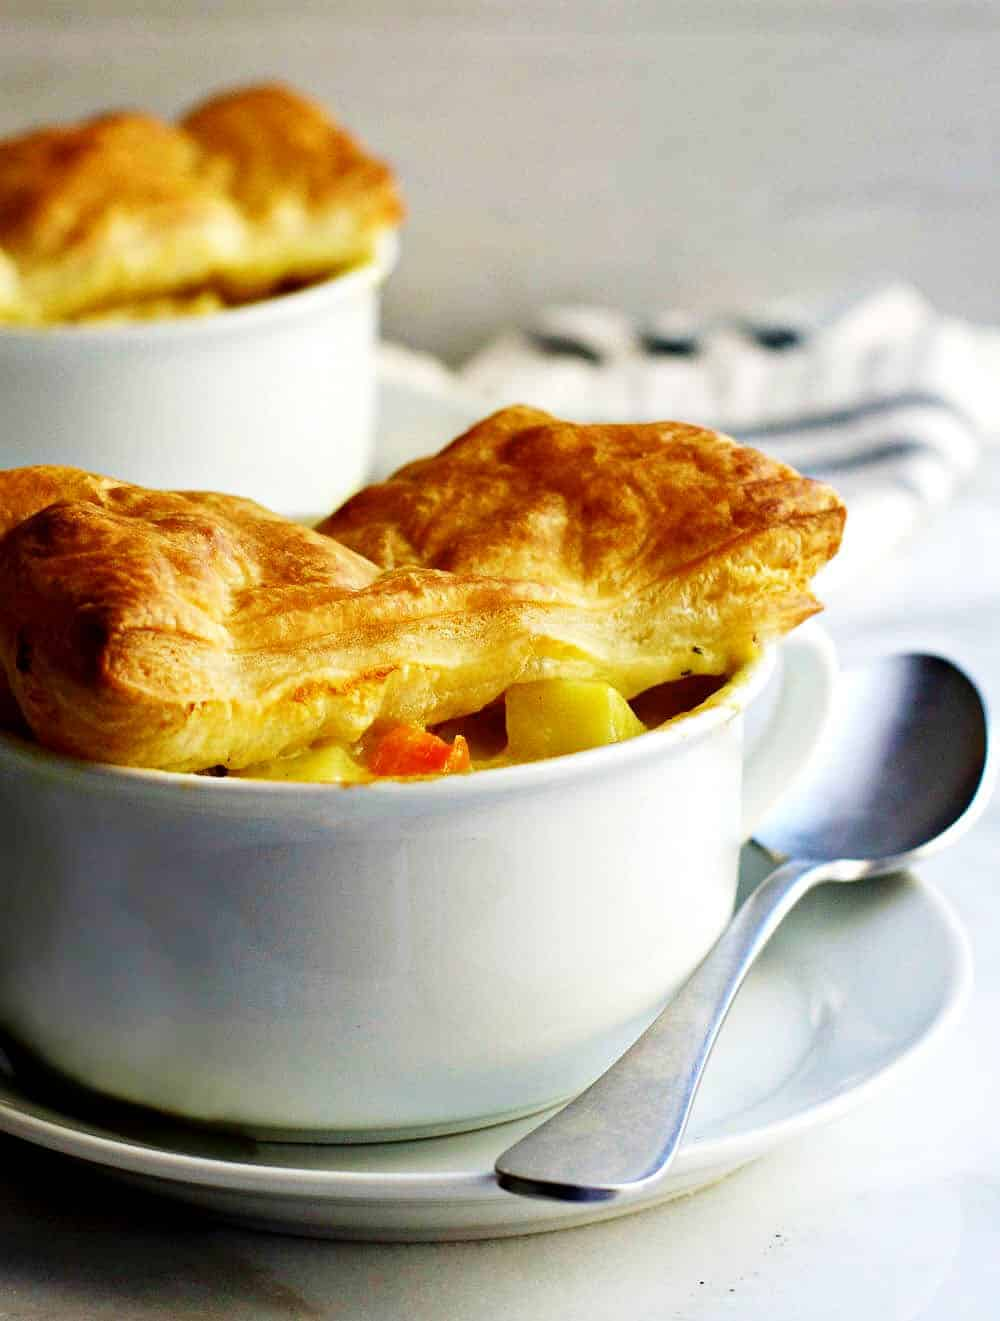 Chicken-Pot-Pie-with-Puff-Pastry served in white bowls